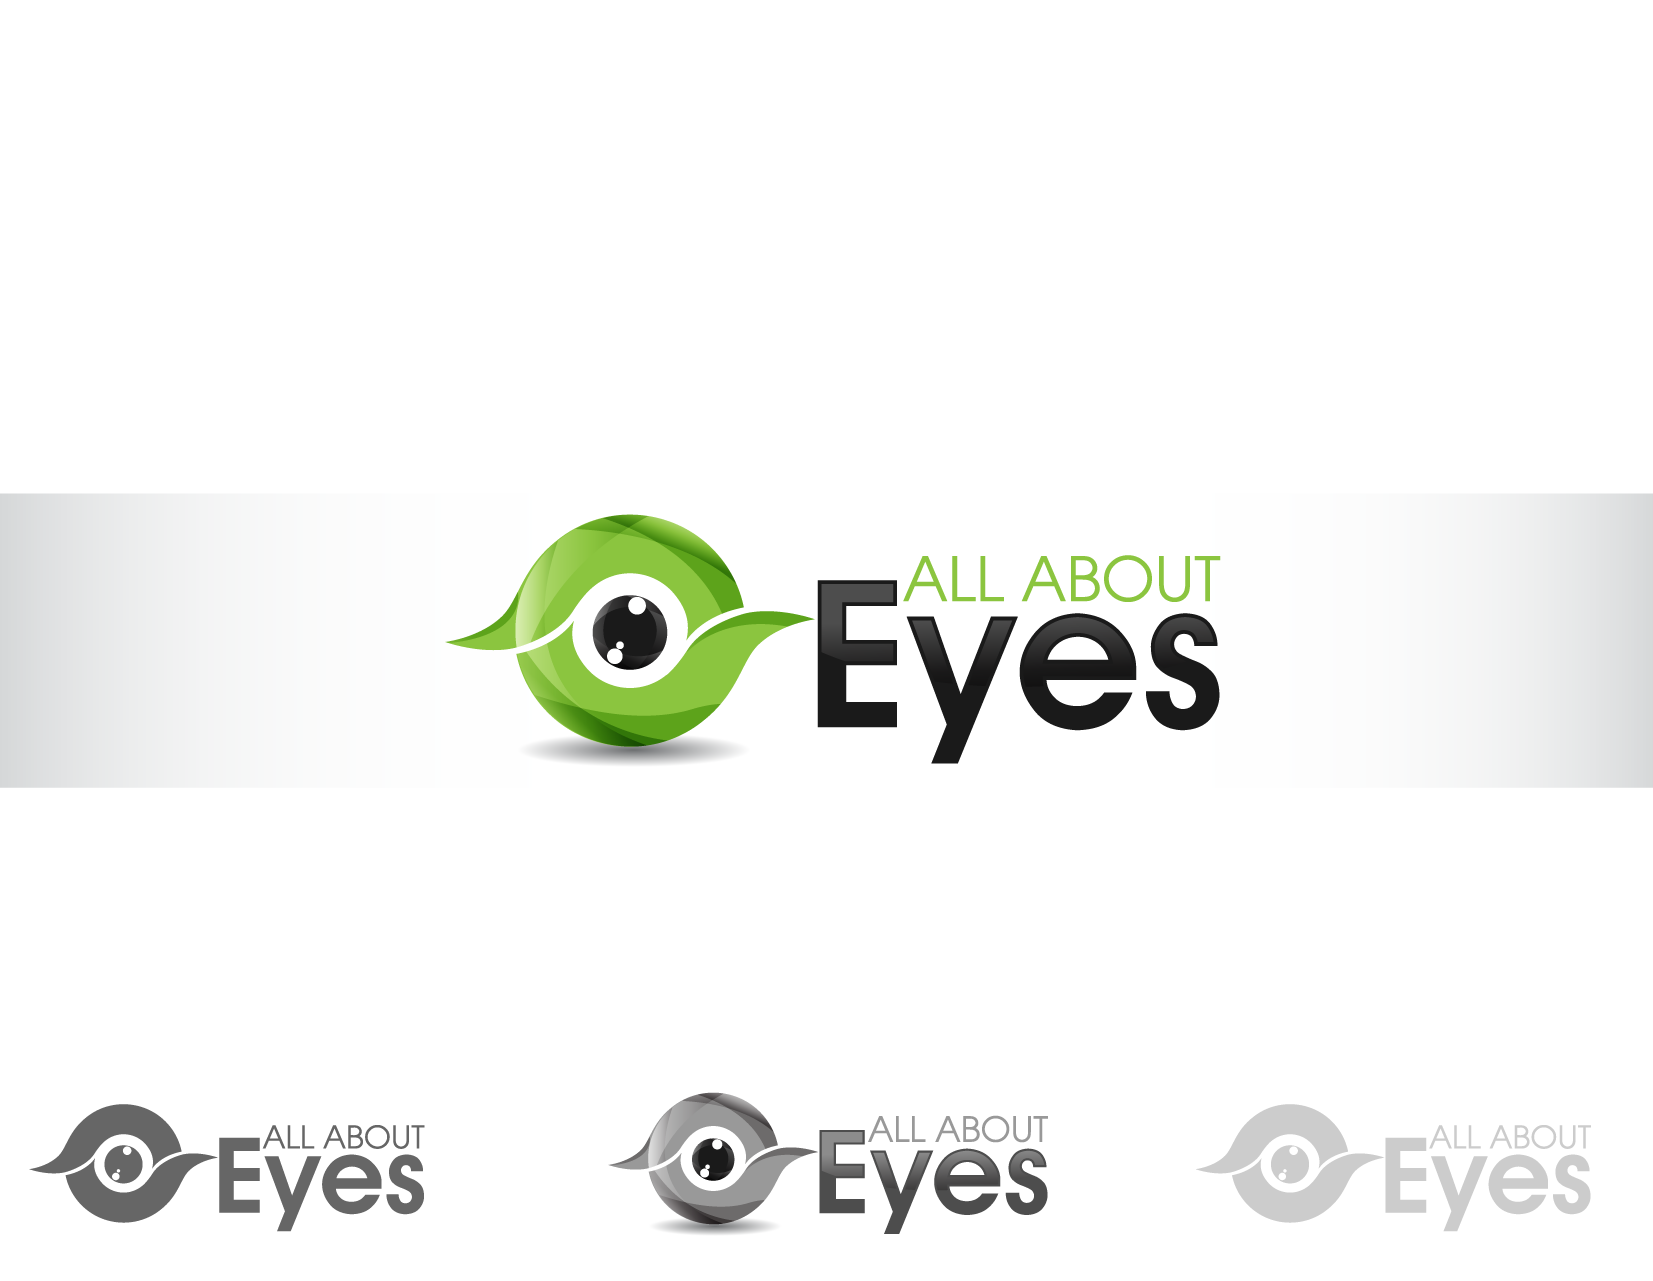 Create the next logo for All About Eyes